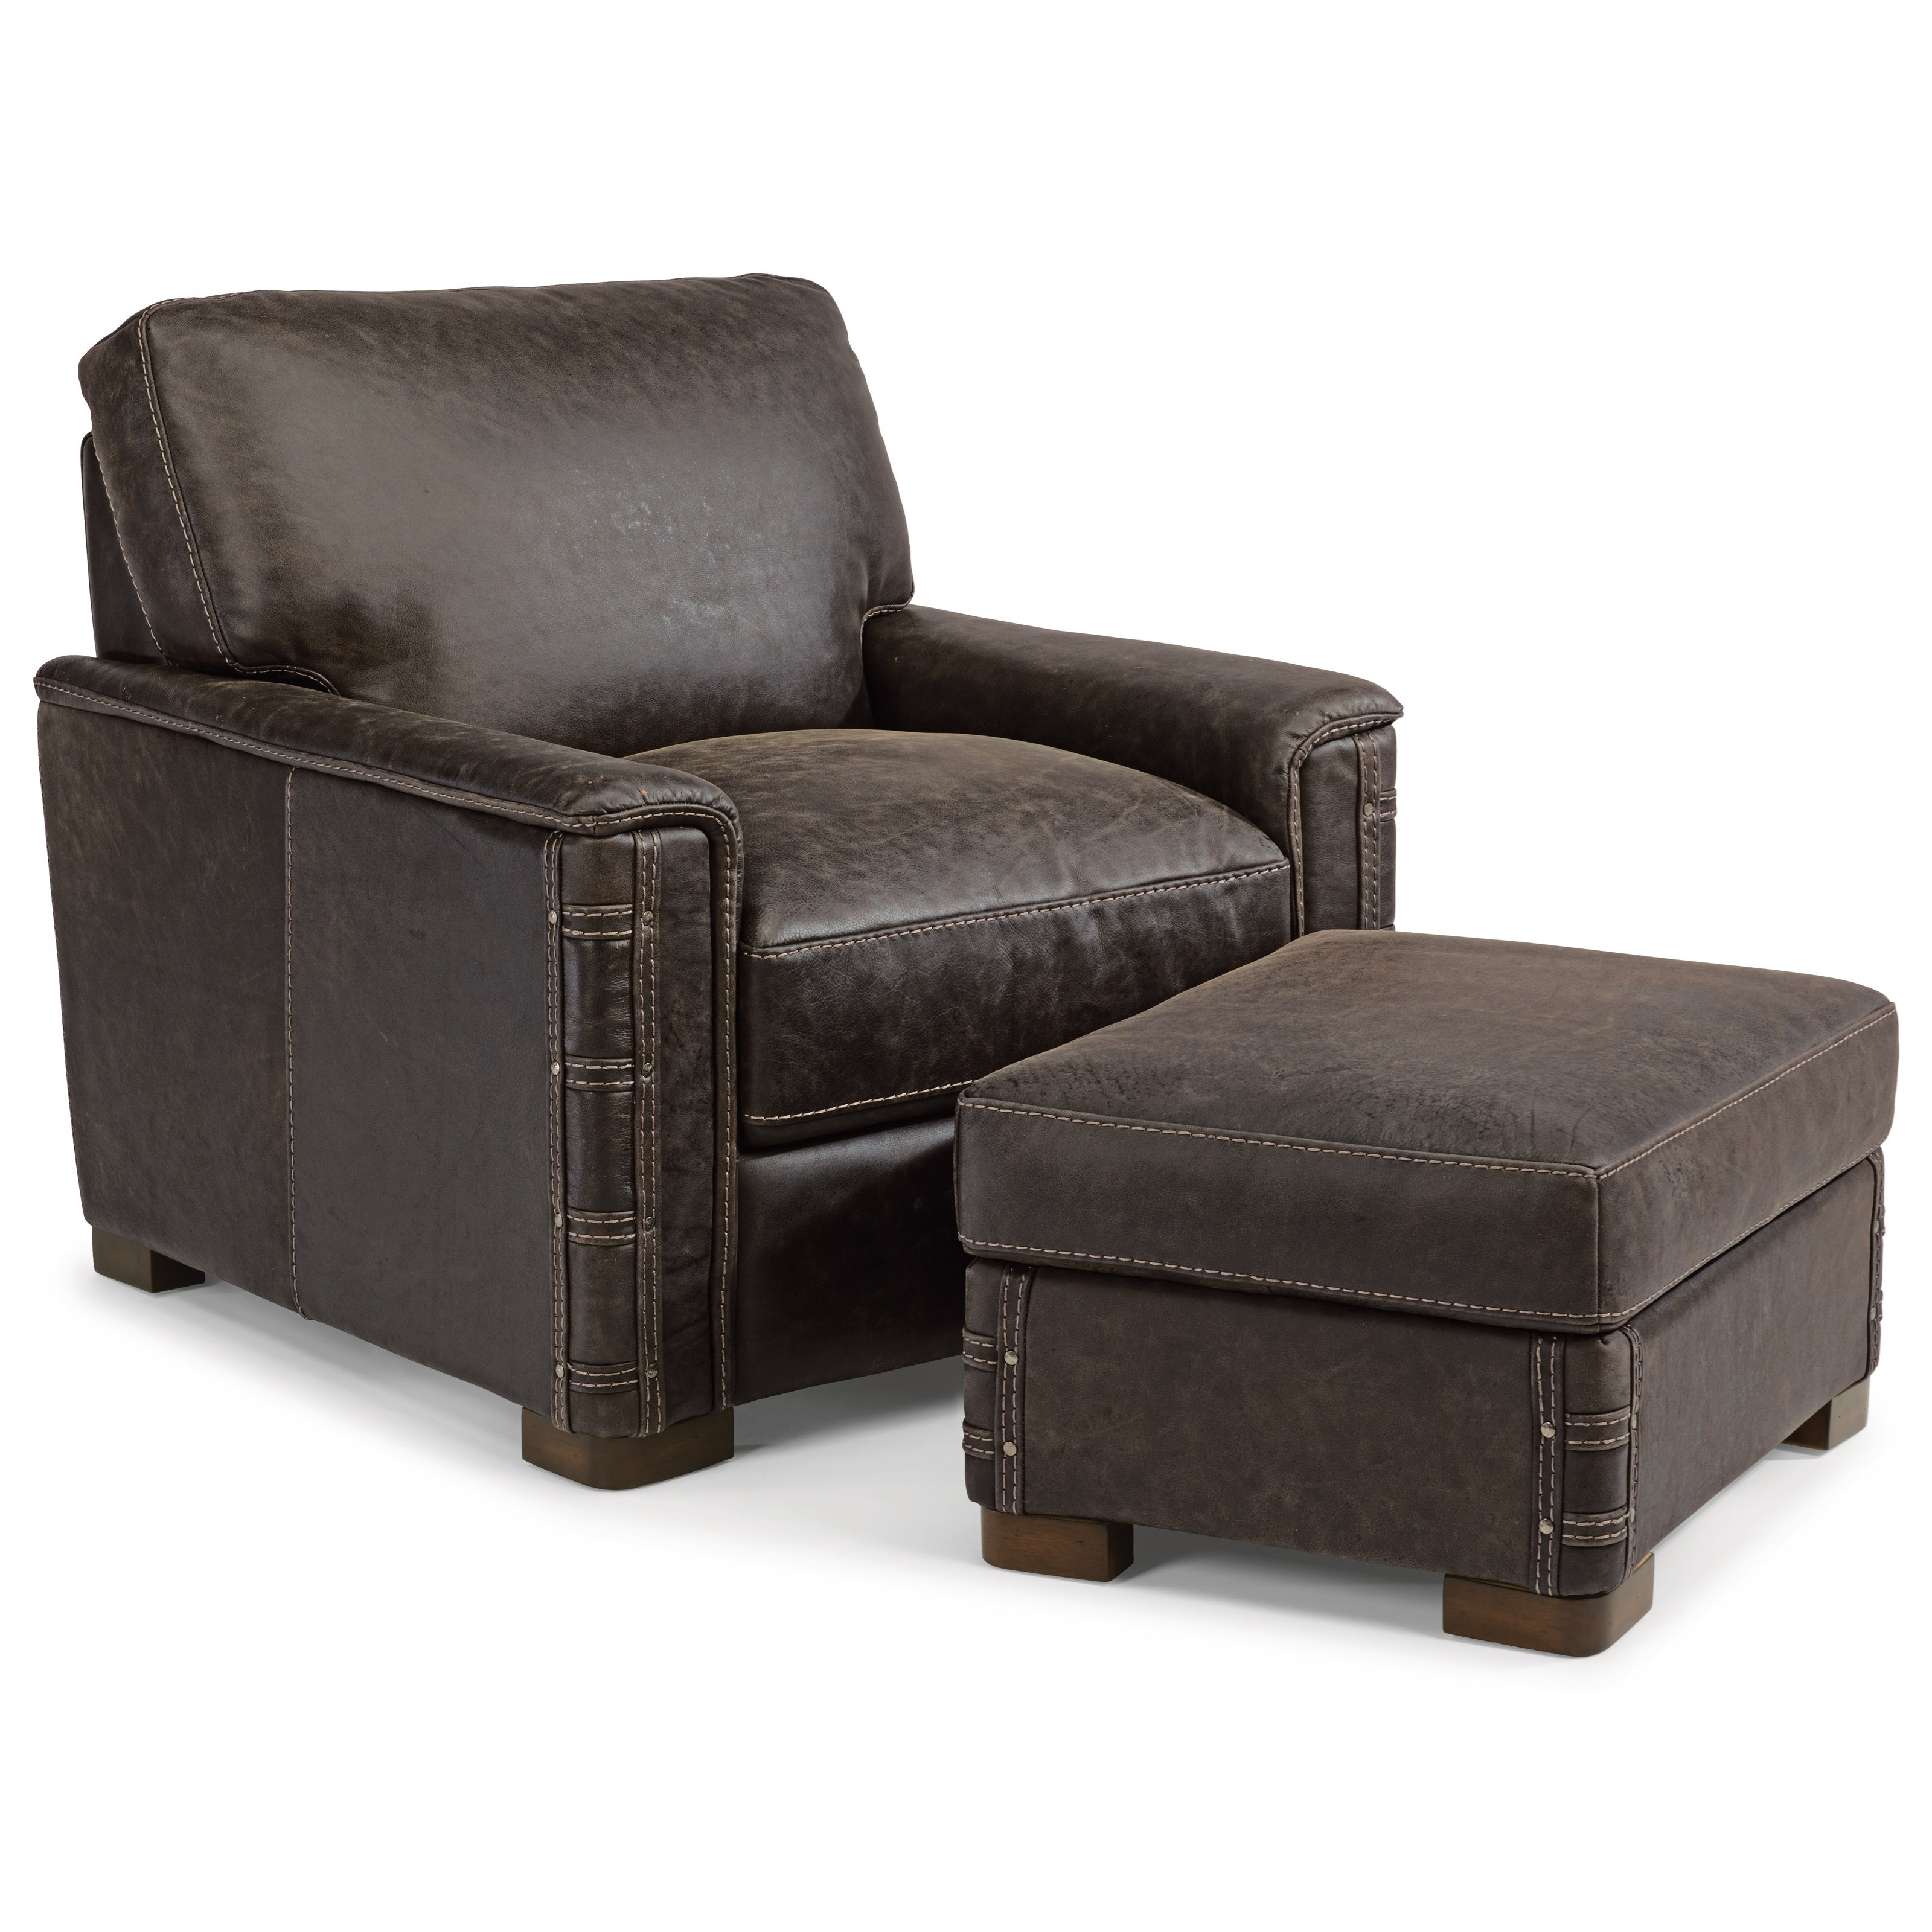 Flexsteel latitudes lomax rustic leather chair and for Best chair and ottoman